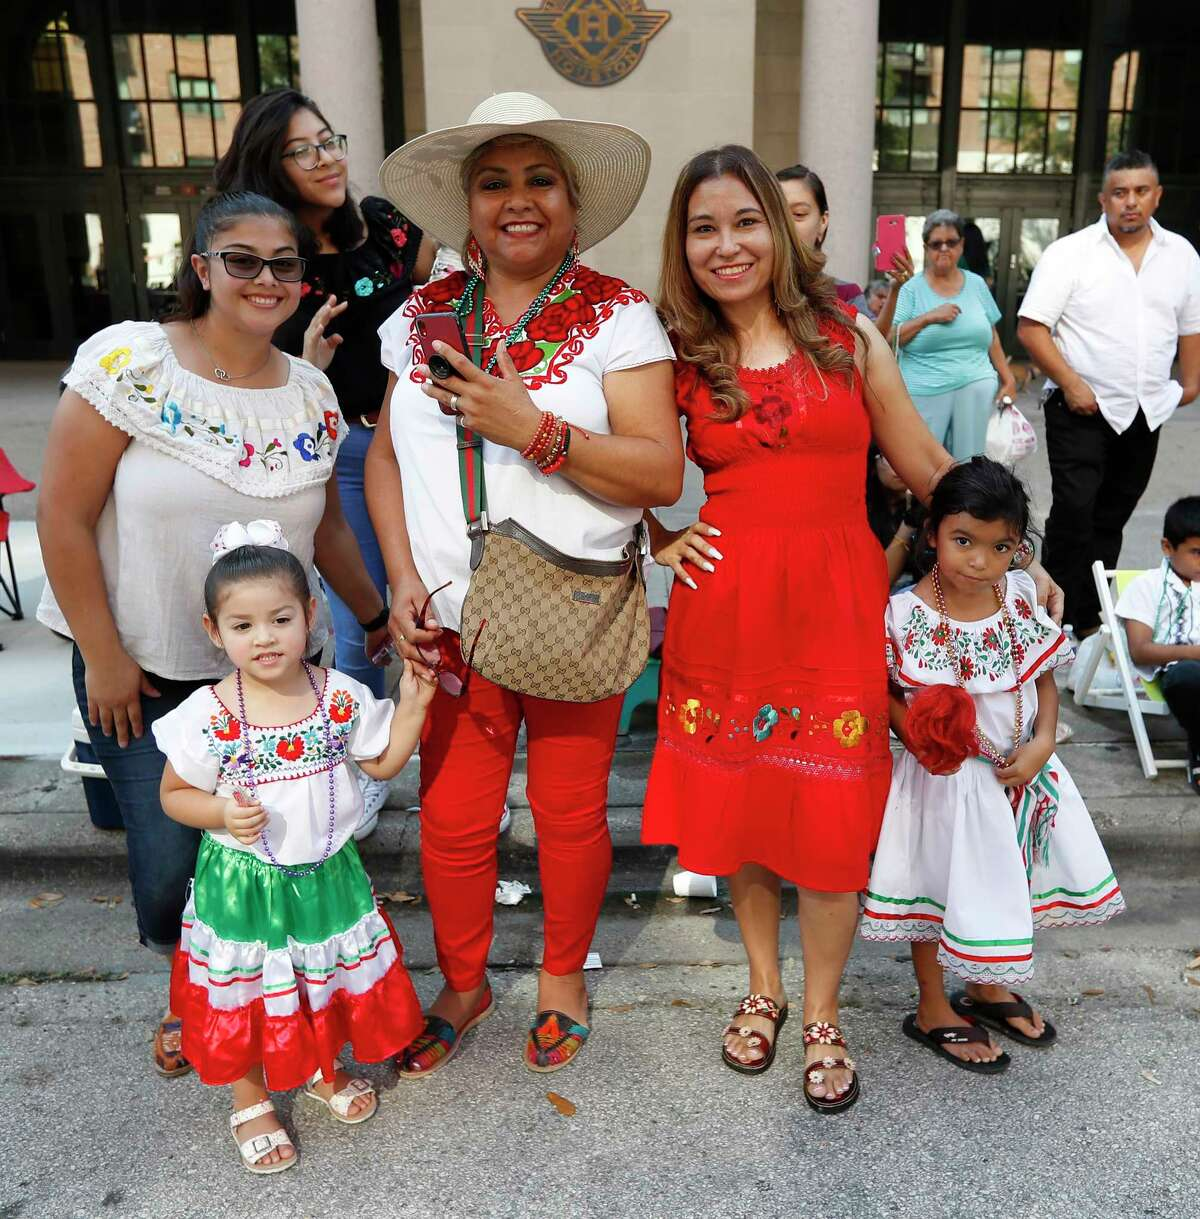 Parade-goers watch the Houston Fiestas Patrias Parade downtown, celebrating the Mexican Independence Day, Saturday, Sept. 14, 2019, in Houston.